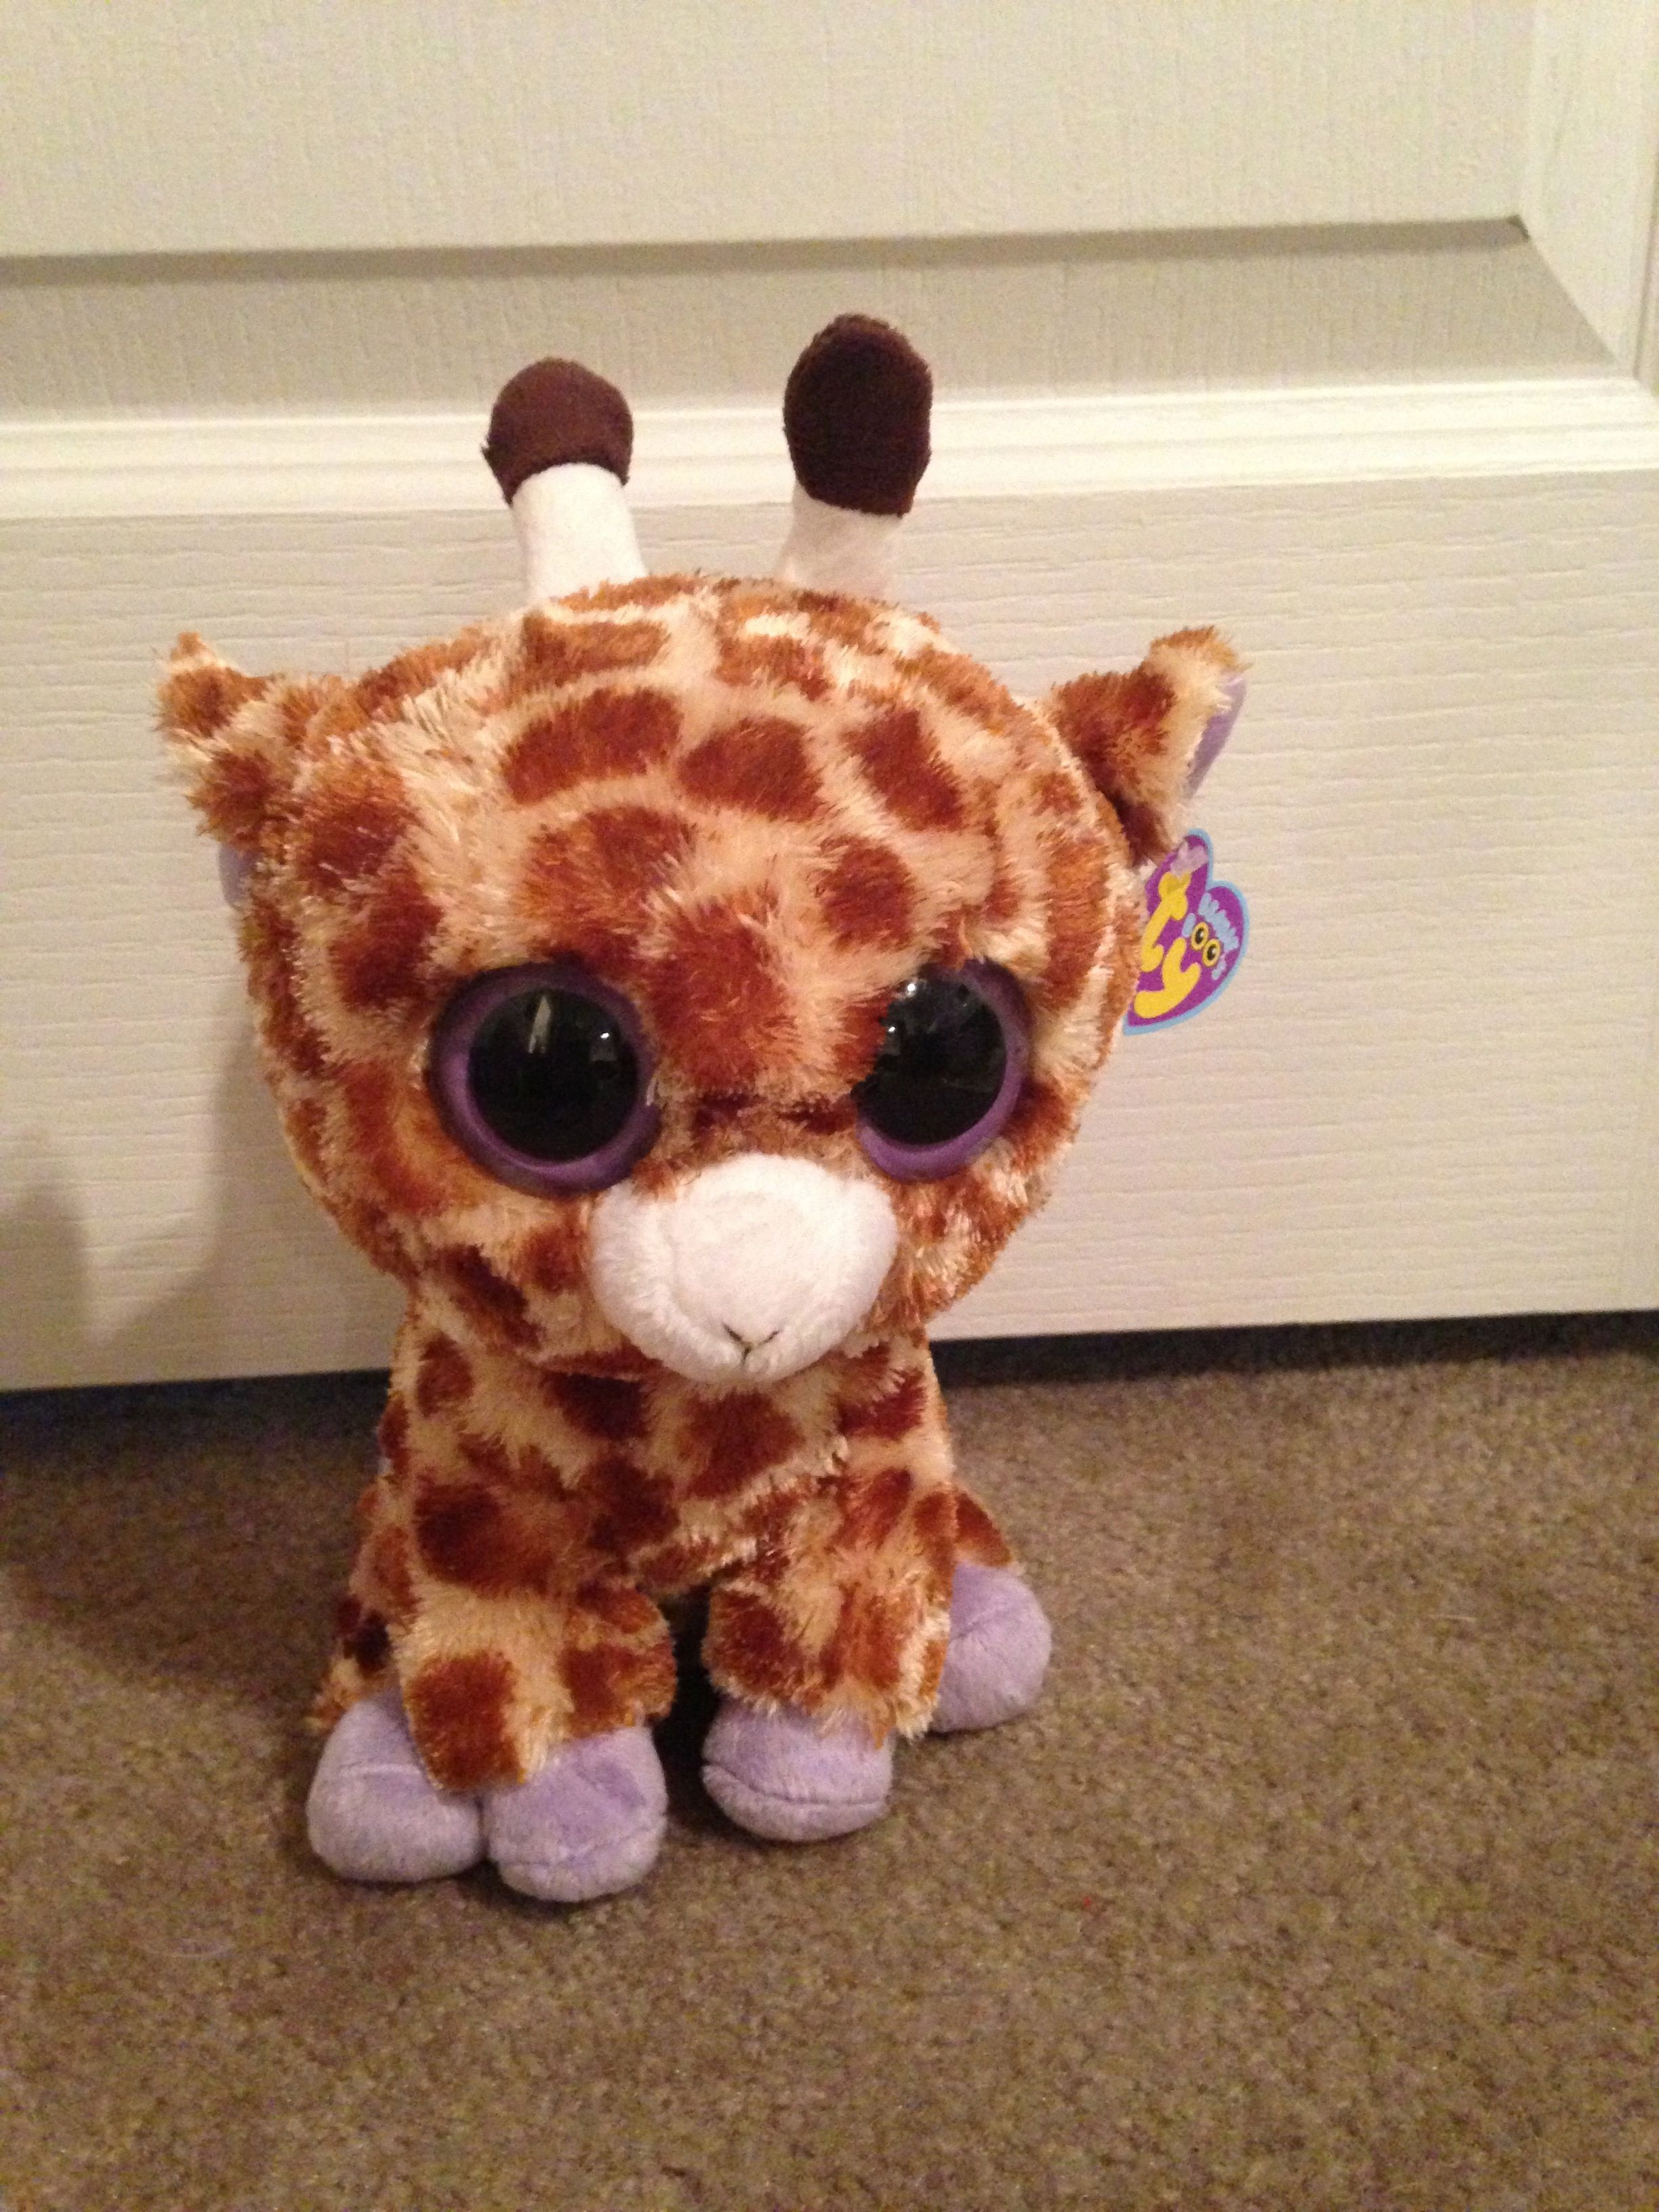 Giraffes have the biggest hearts and stand above all the